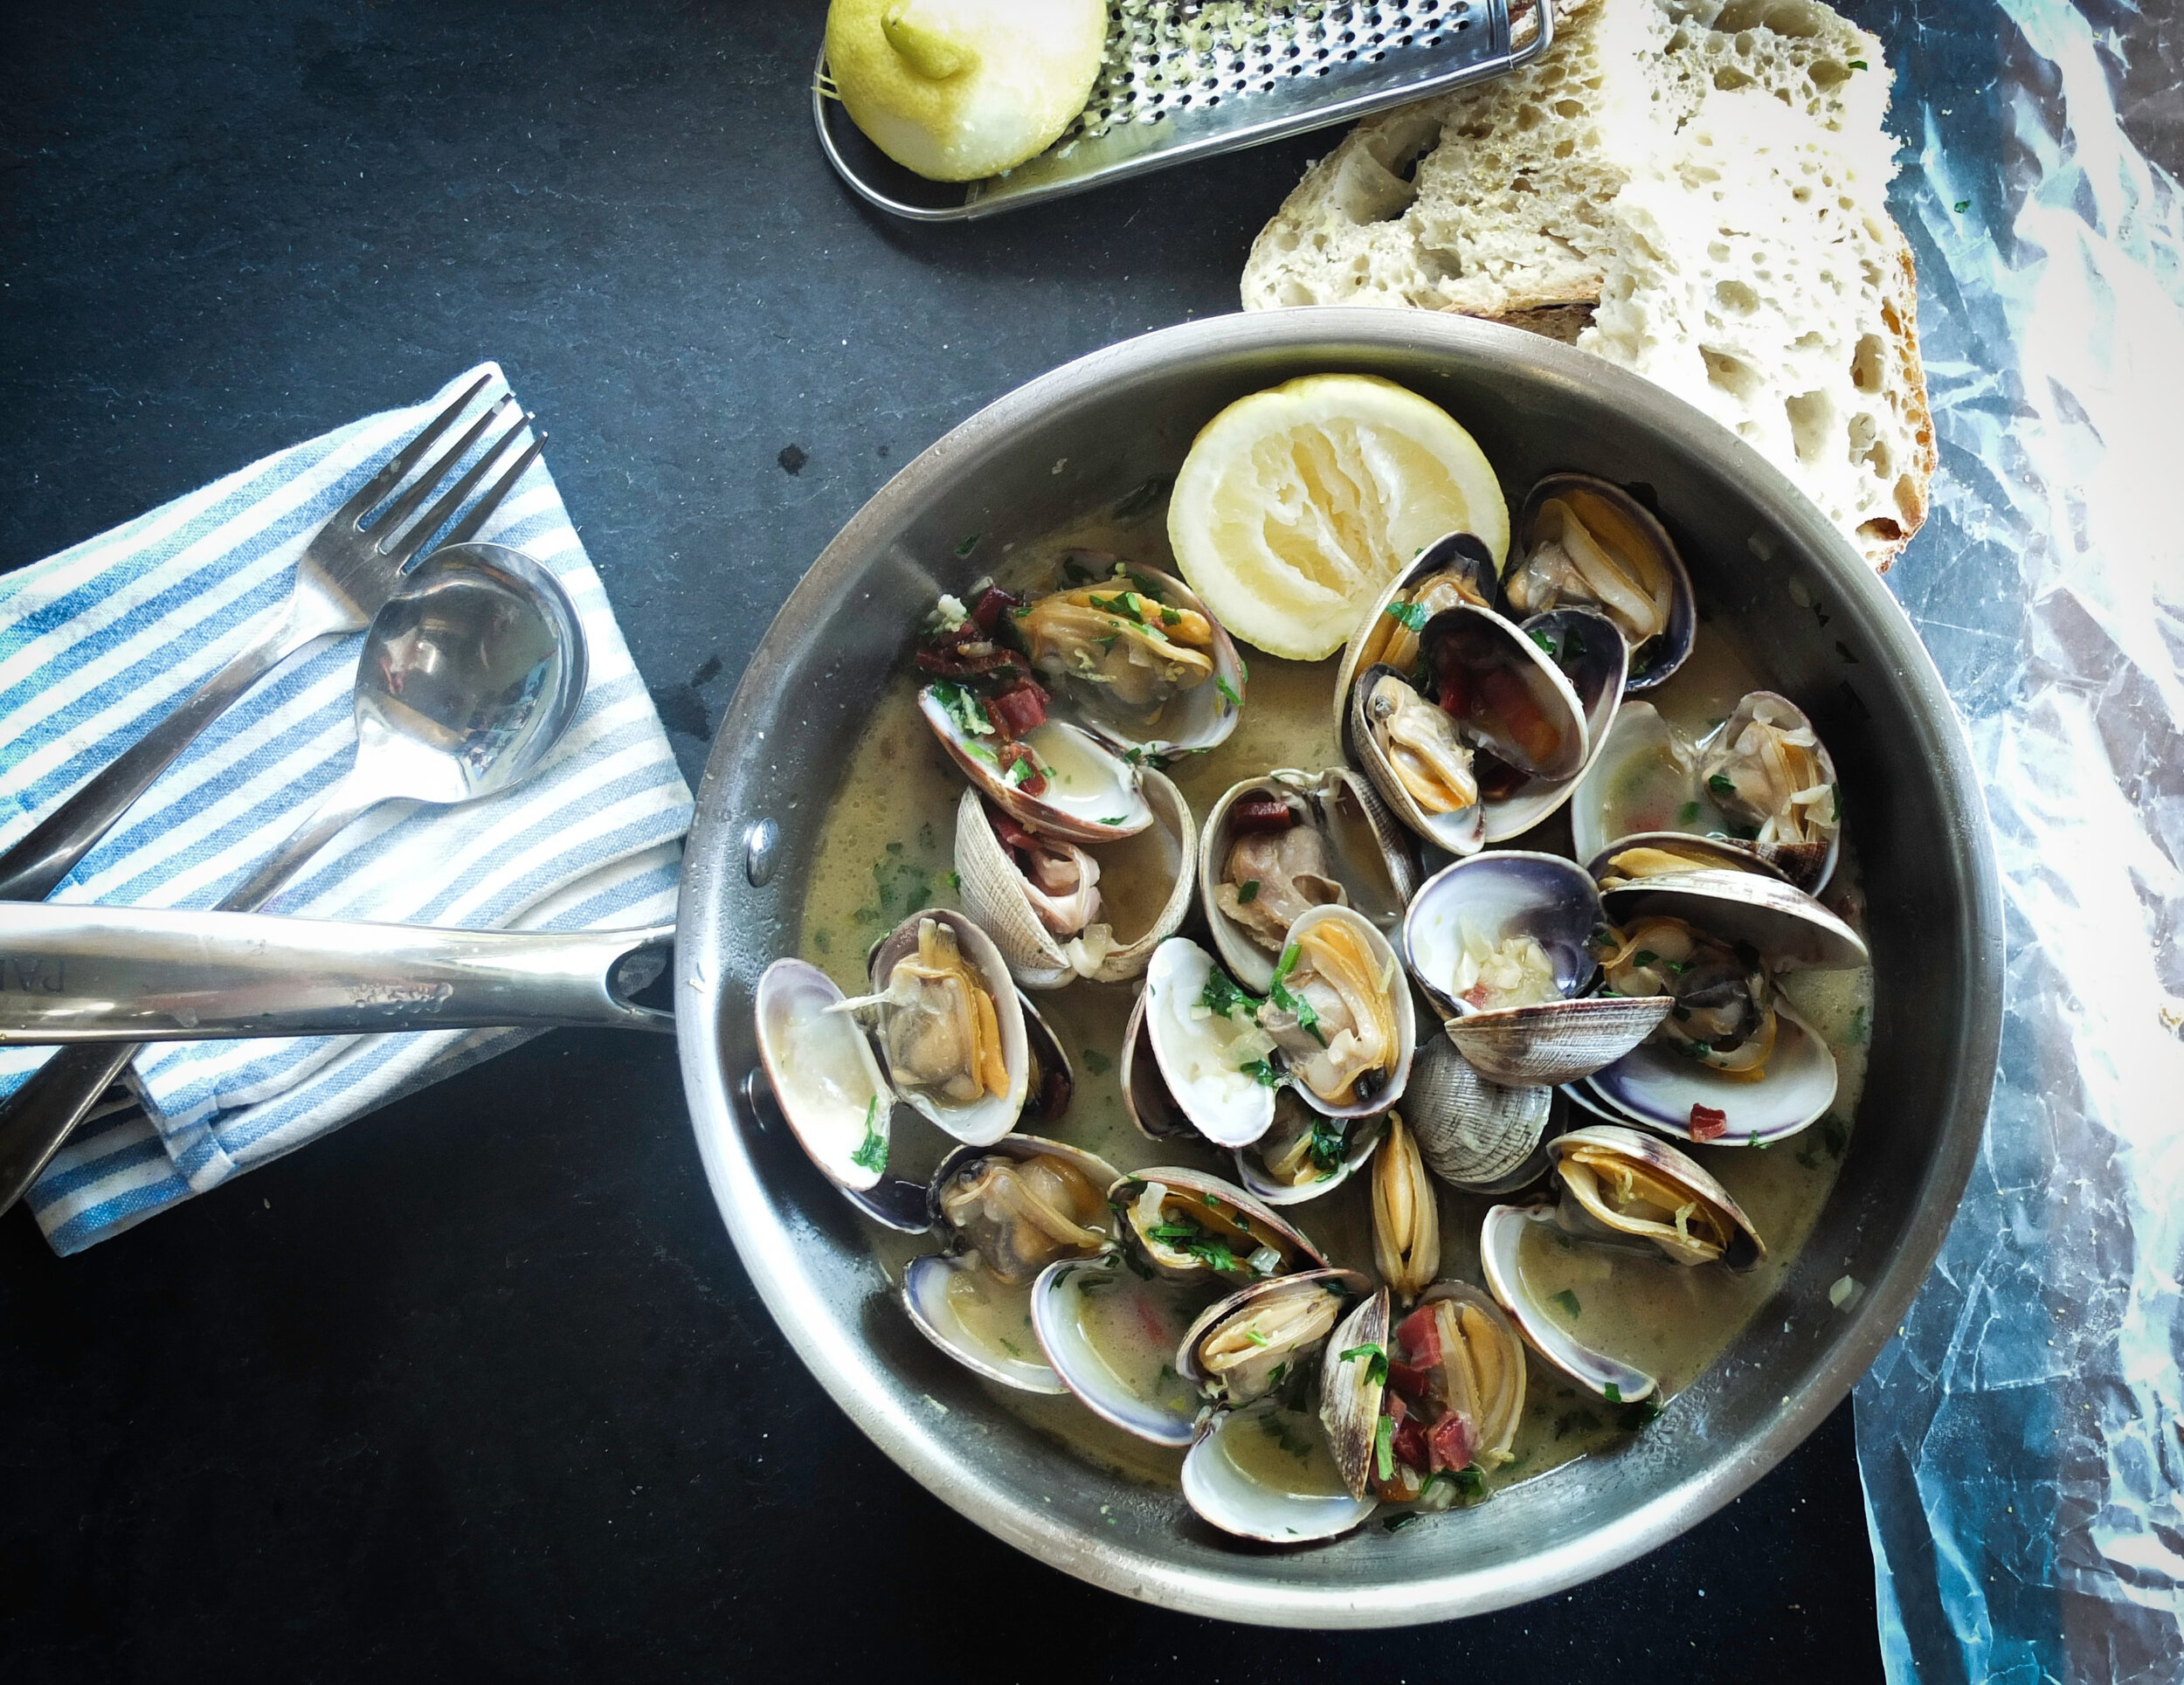 Foods that will save the planet article. Image of mussels cooked in a pan.jpg